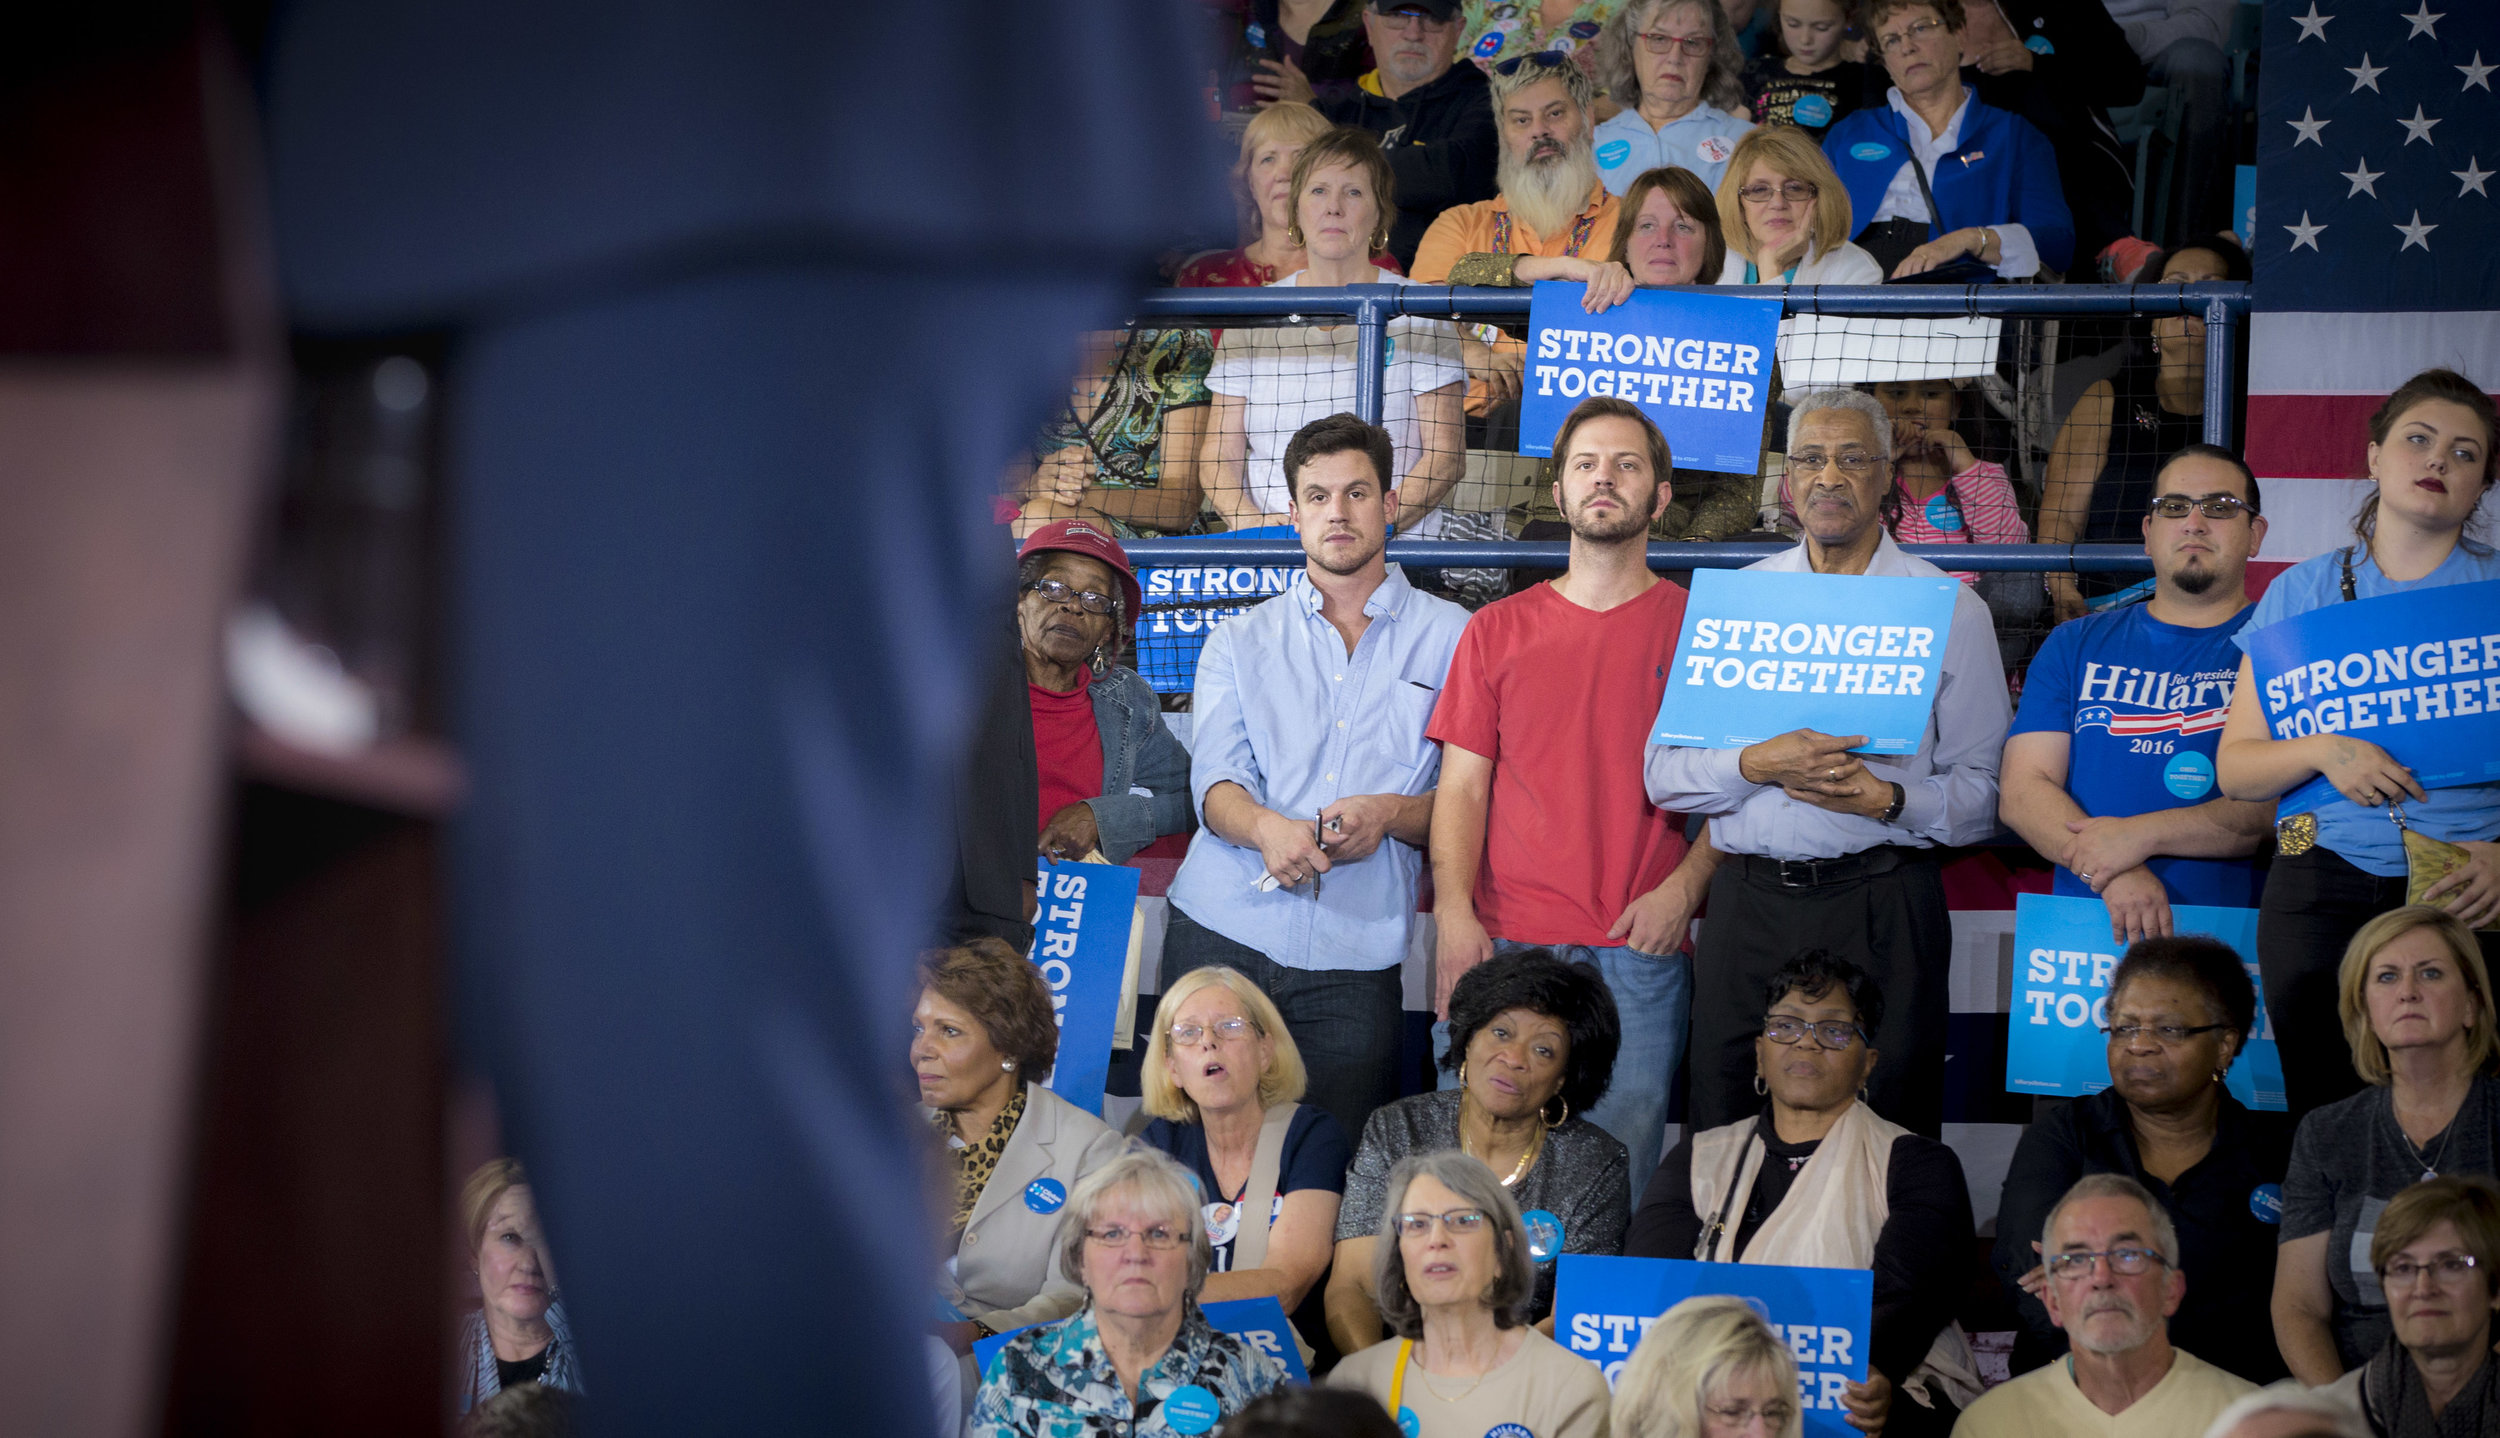 10032016_BJM_Hillary_Campaigns_in_Akron_Ohio_54.jpg